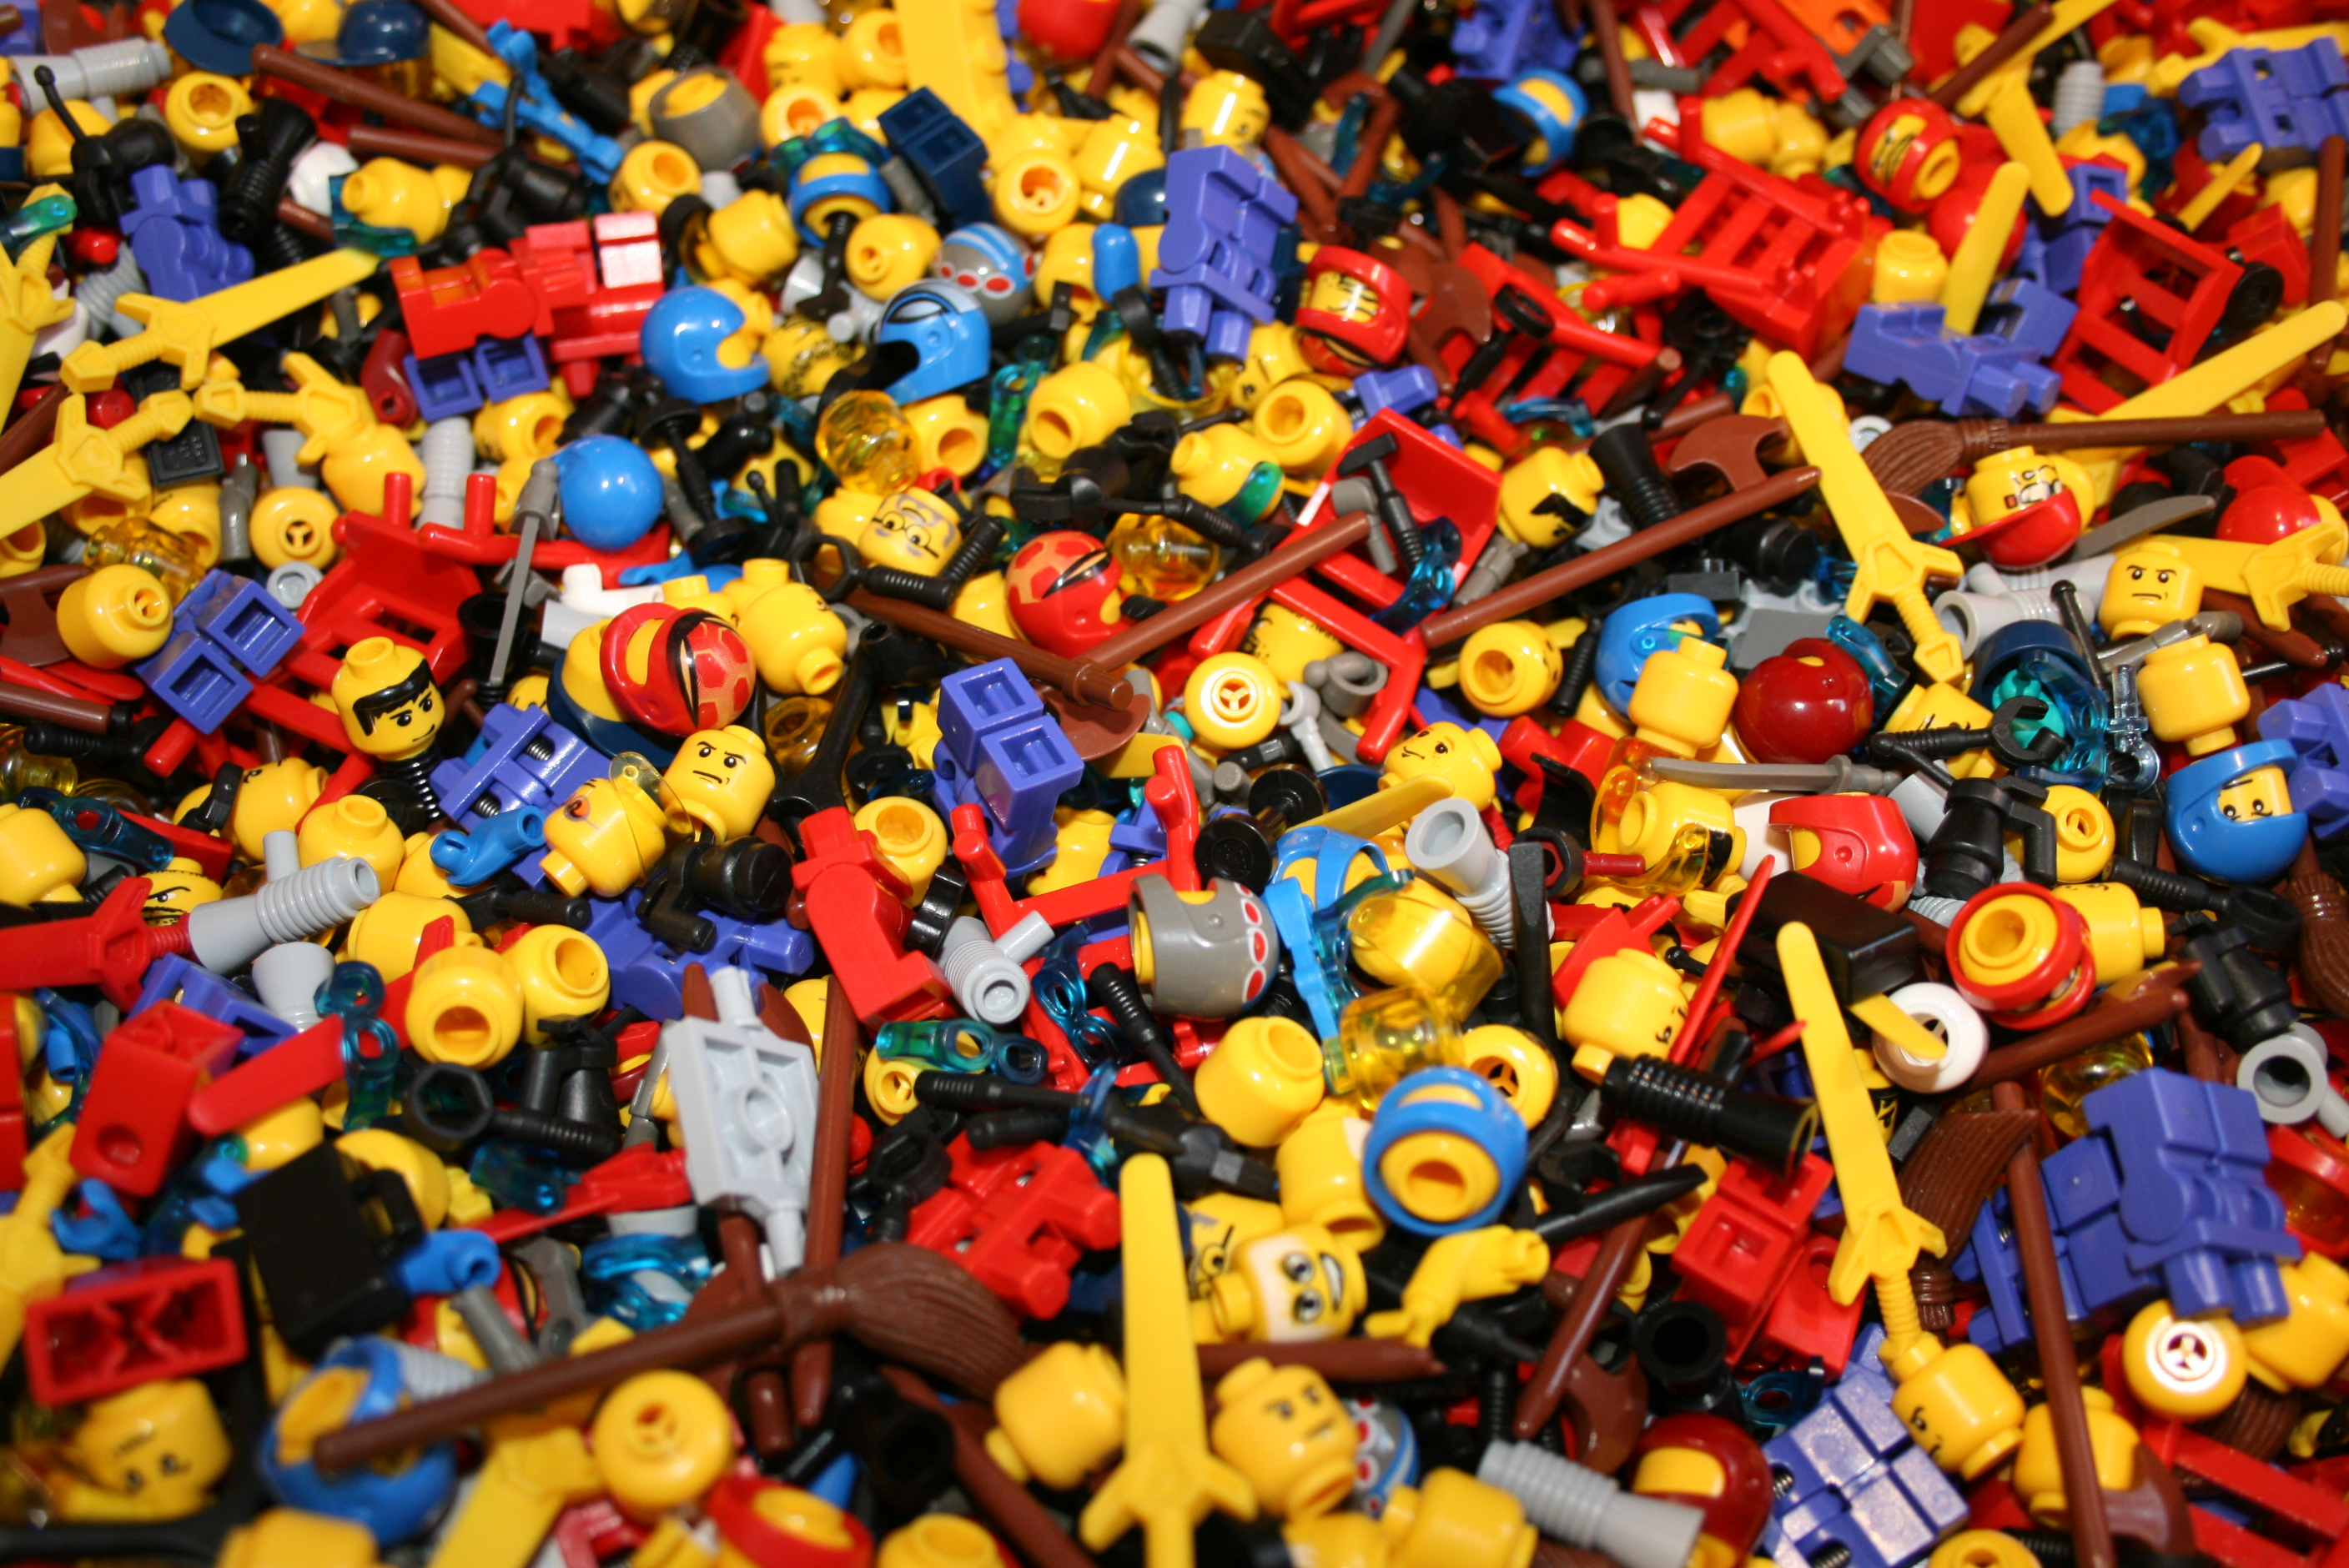 Building Toys From The 90s : Lego pile flickr photo sharing